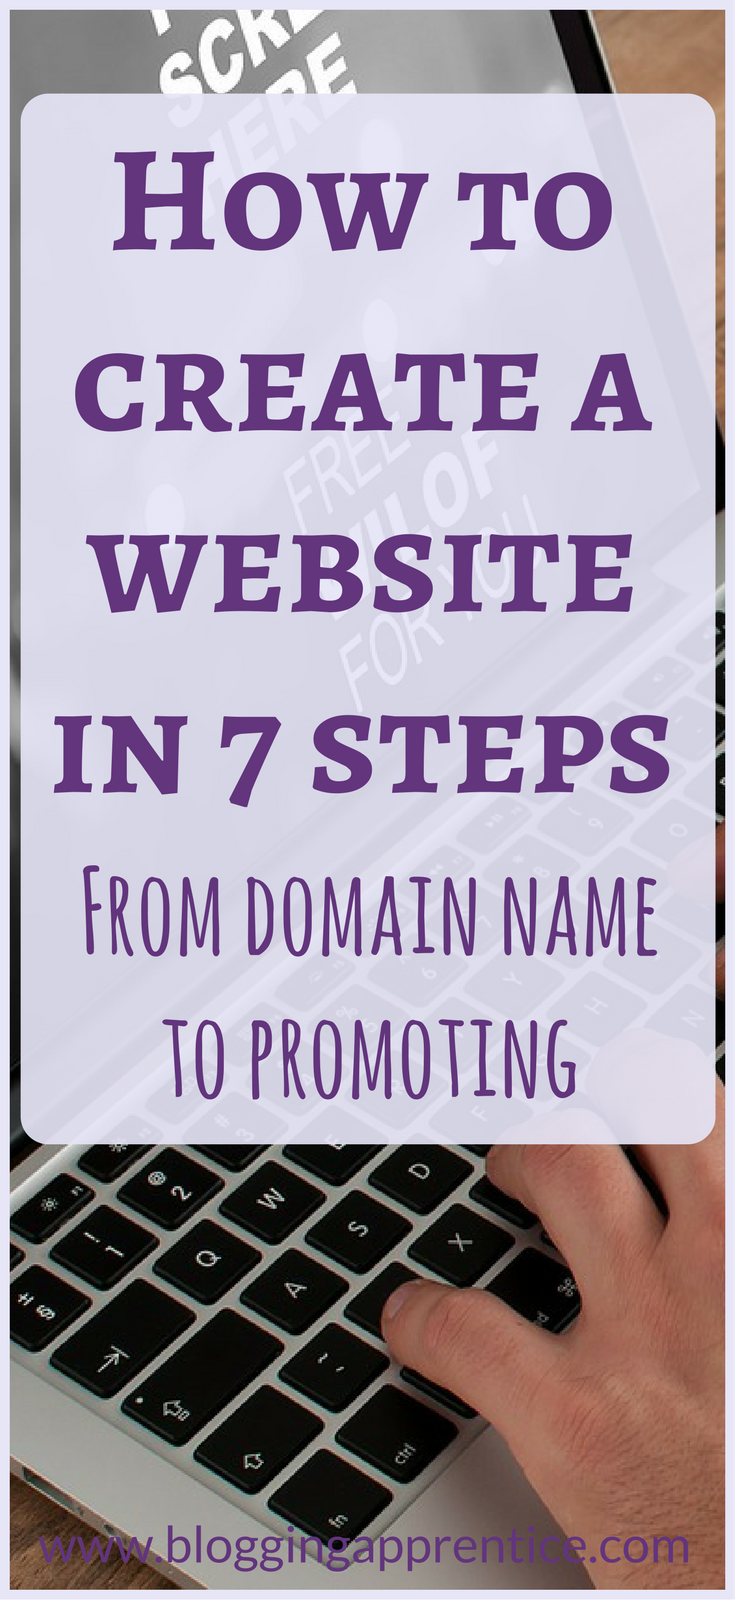 7 simple steps to set up your website - from choosing a domain name through hosting up to publishing and promoting it - read more on BloggingApprentice.com!